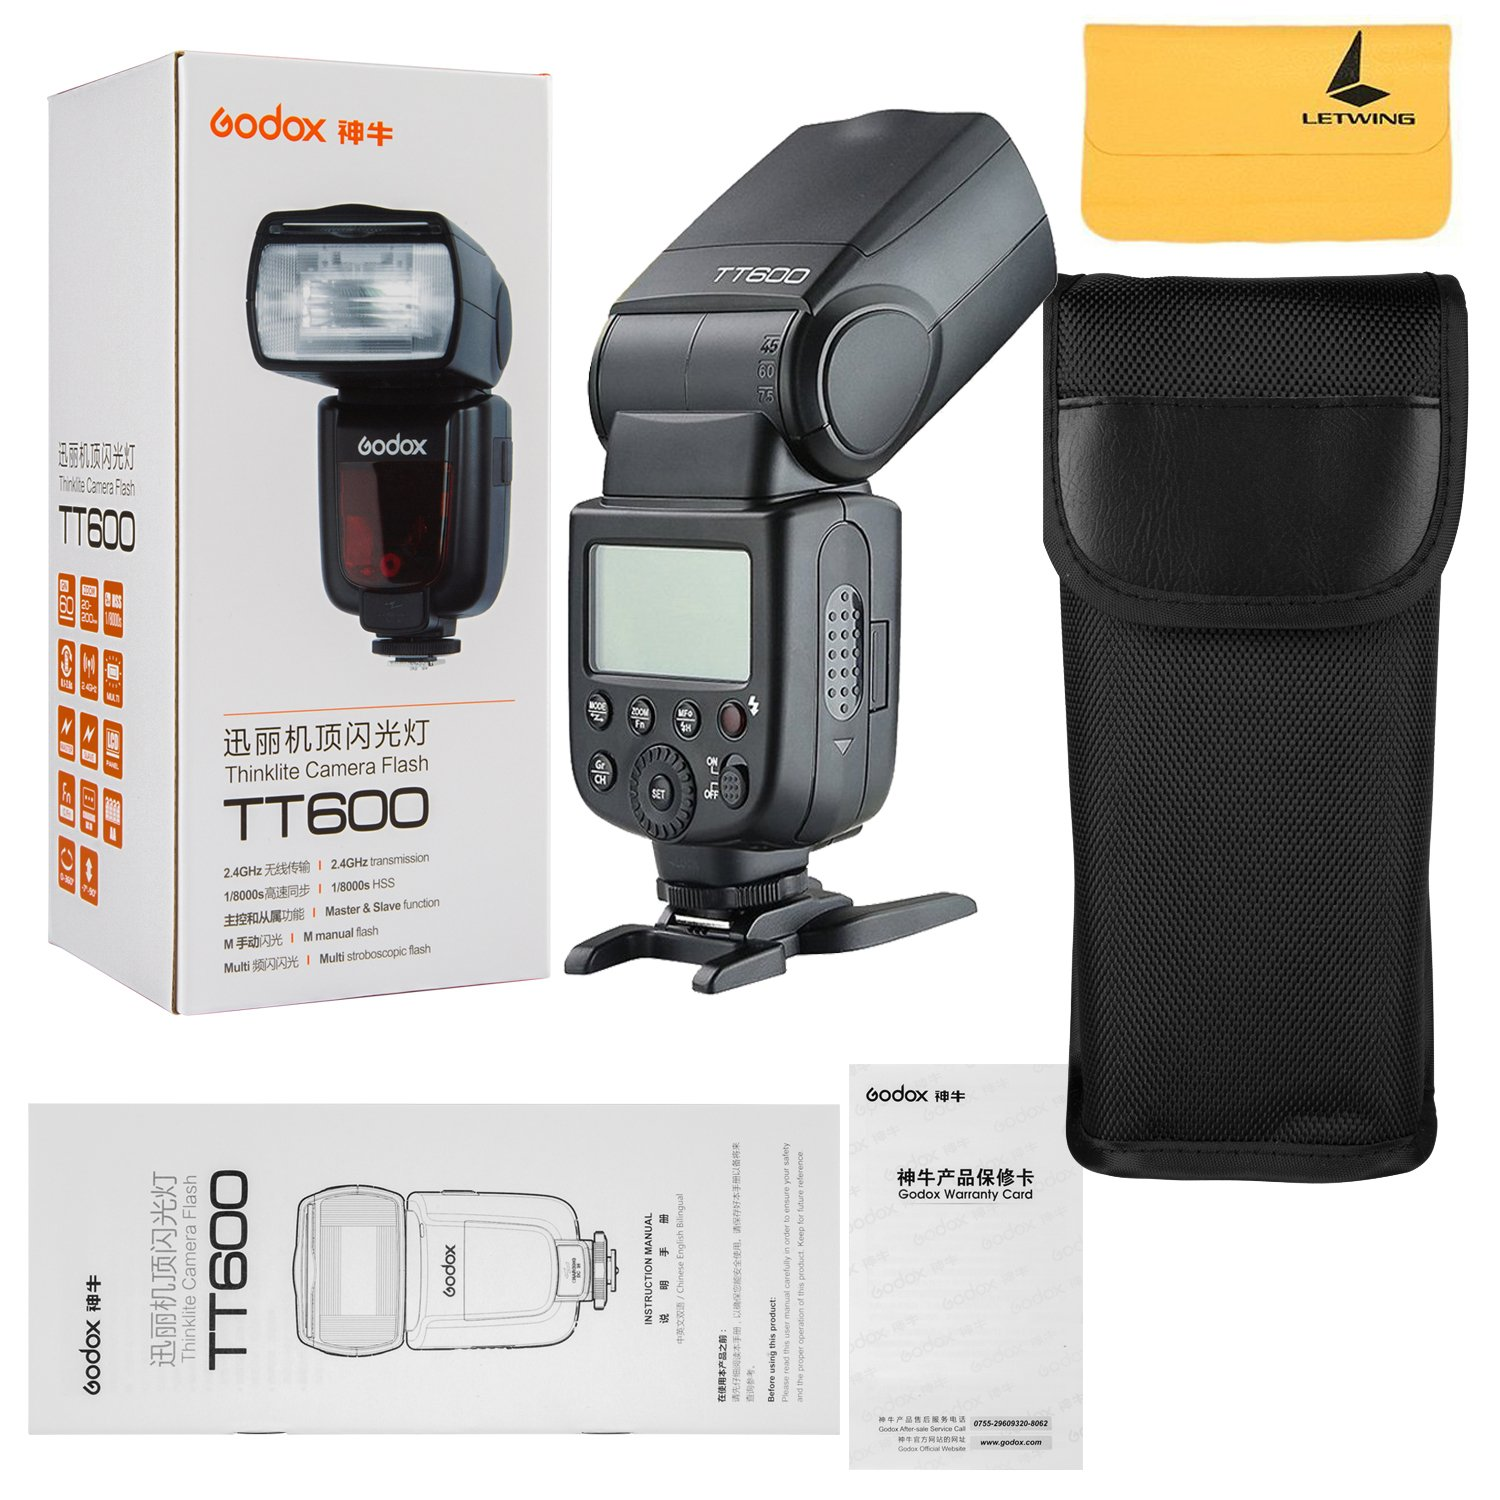 Godox TT600 2.4G Wireless Flash Speedlite Master / Slave Flash with Built-in Trigger System for Canon Nikon Pentax Olympus Fujifilm Panasonic (TT600)